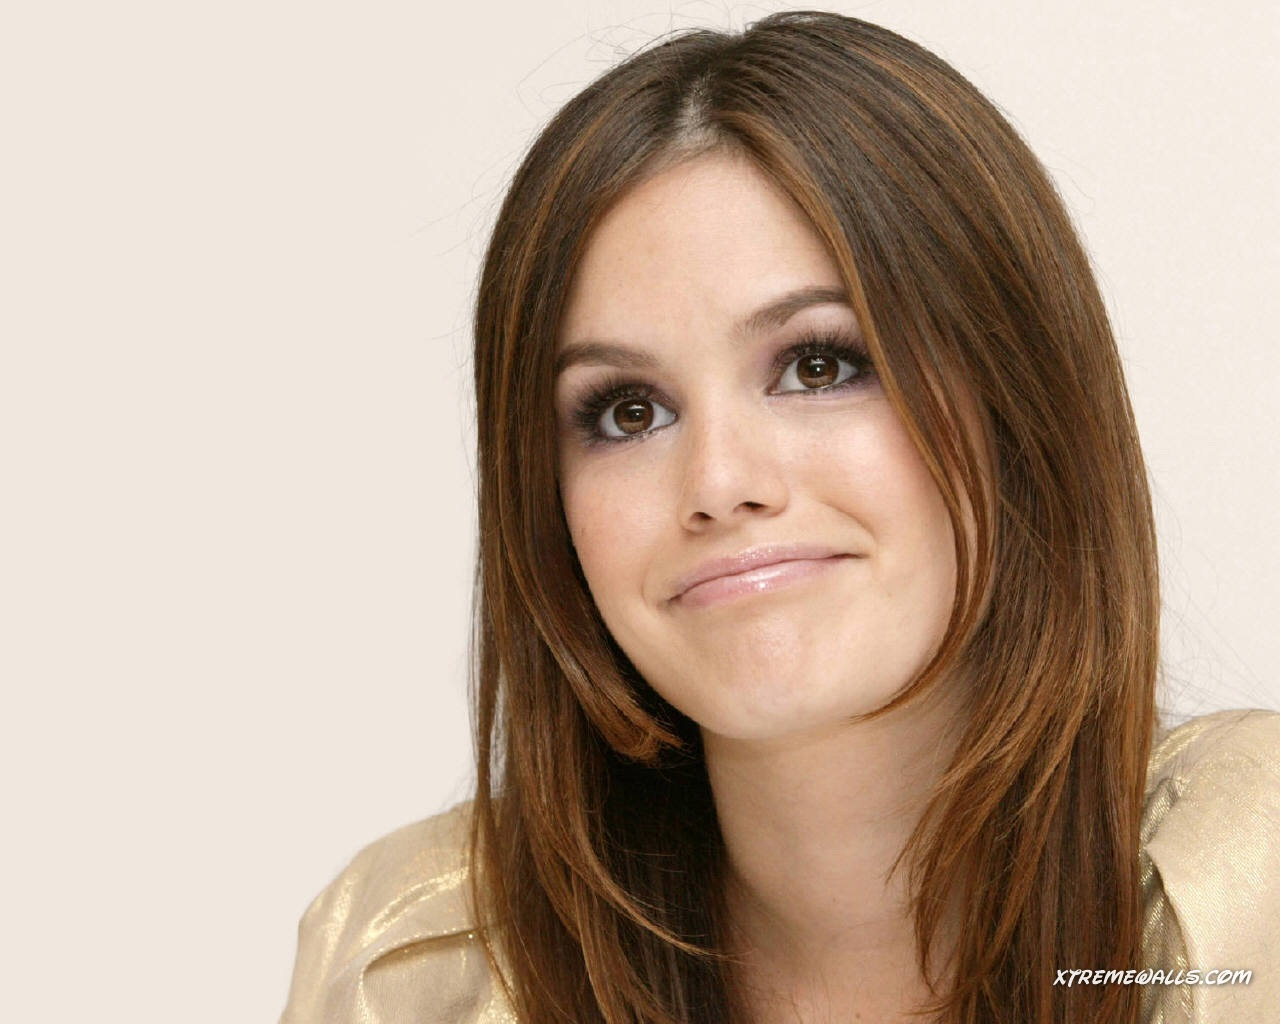 rachel bilson ... but I can't be too sure. Security had already dragged me quite a ways ...